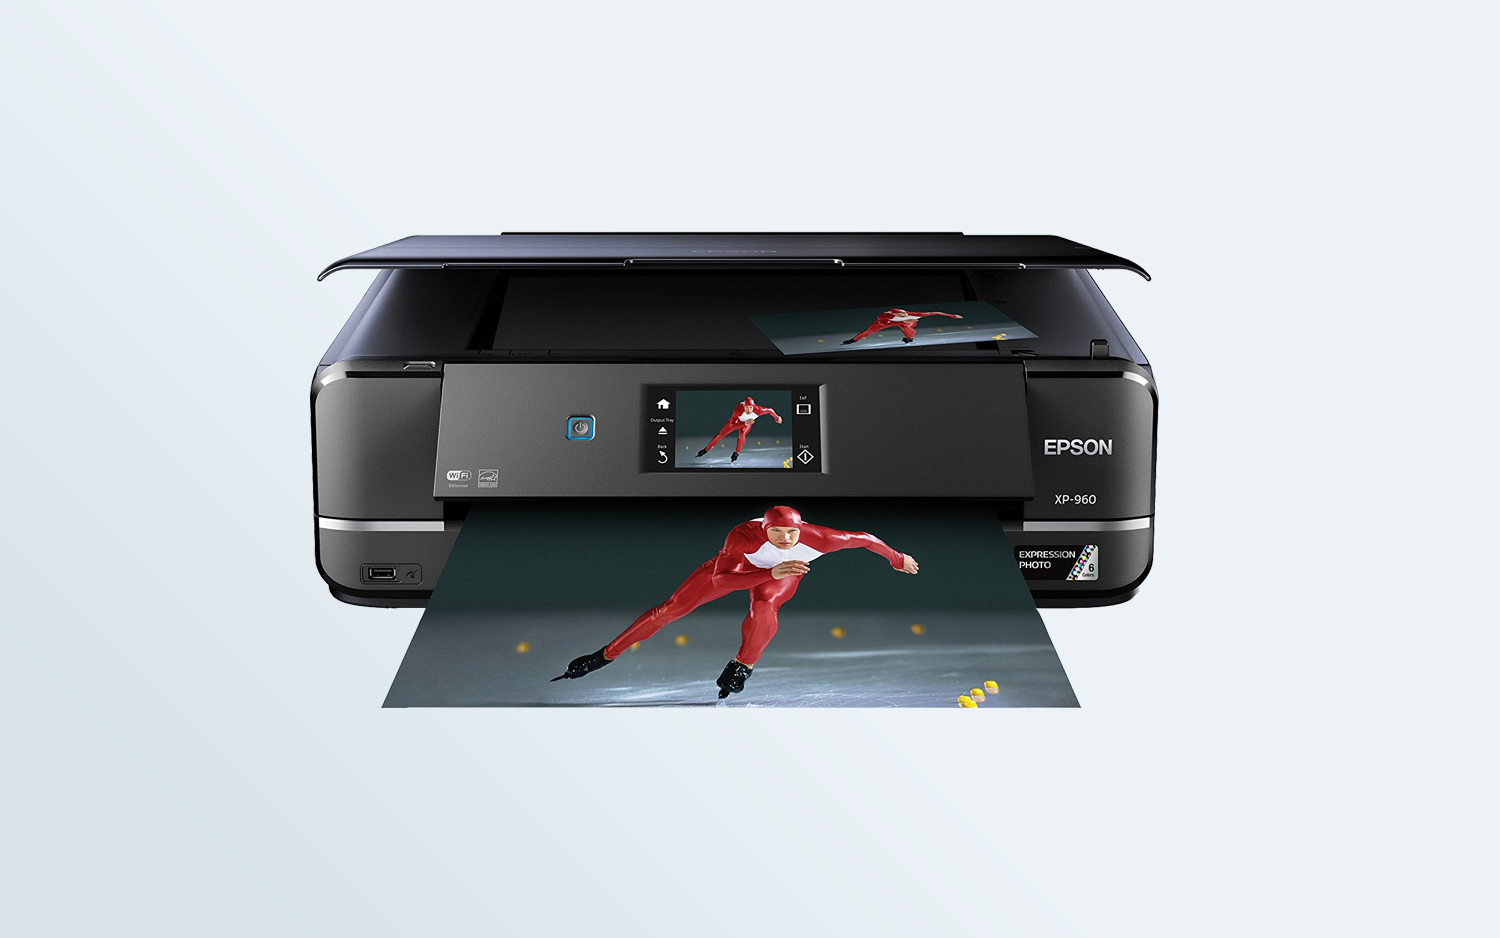 Best Photo Printers 2019 - Reviews of 4x6, 8x10 Photo